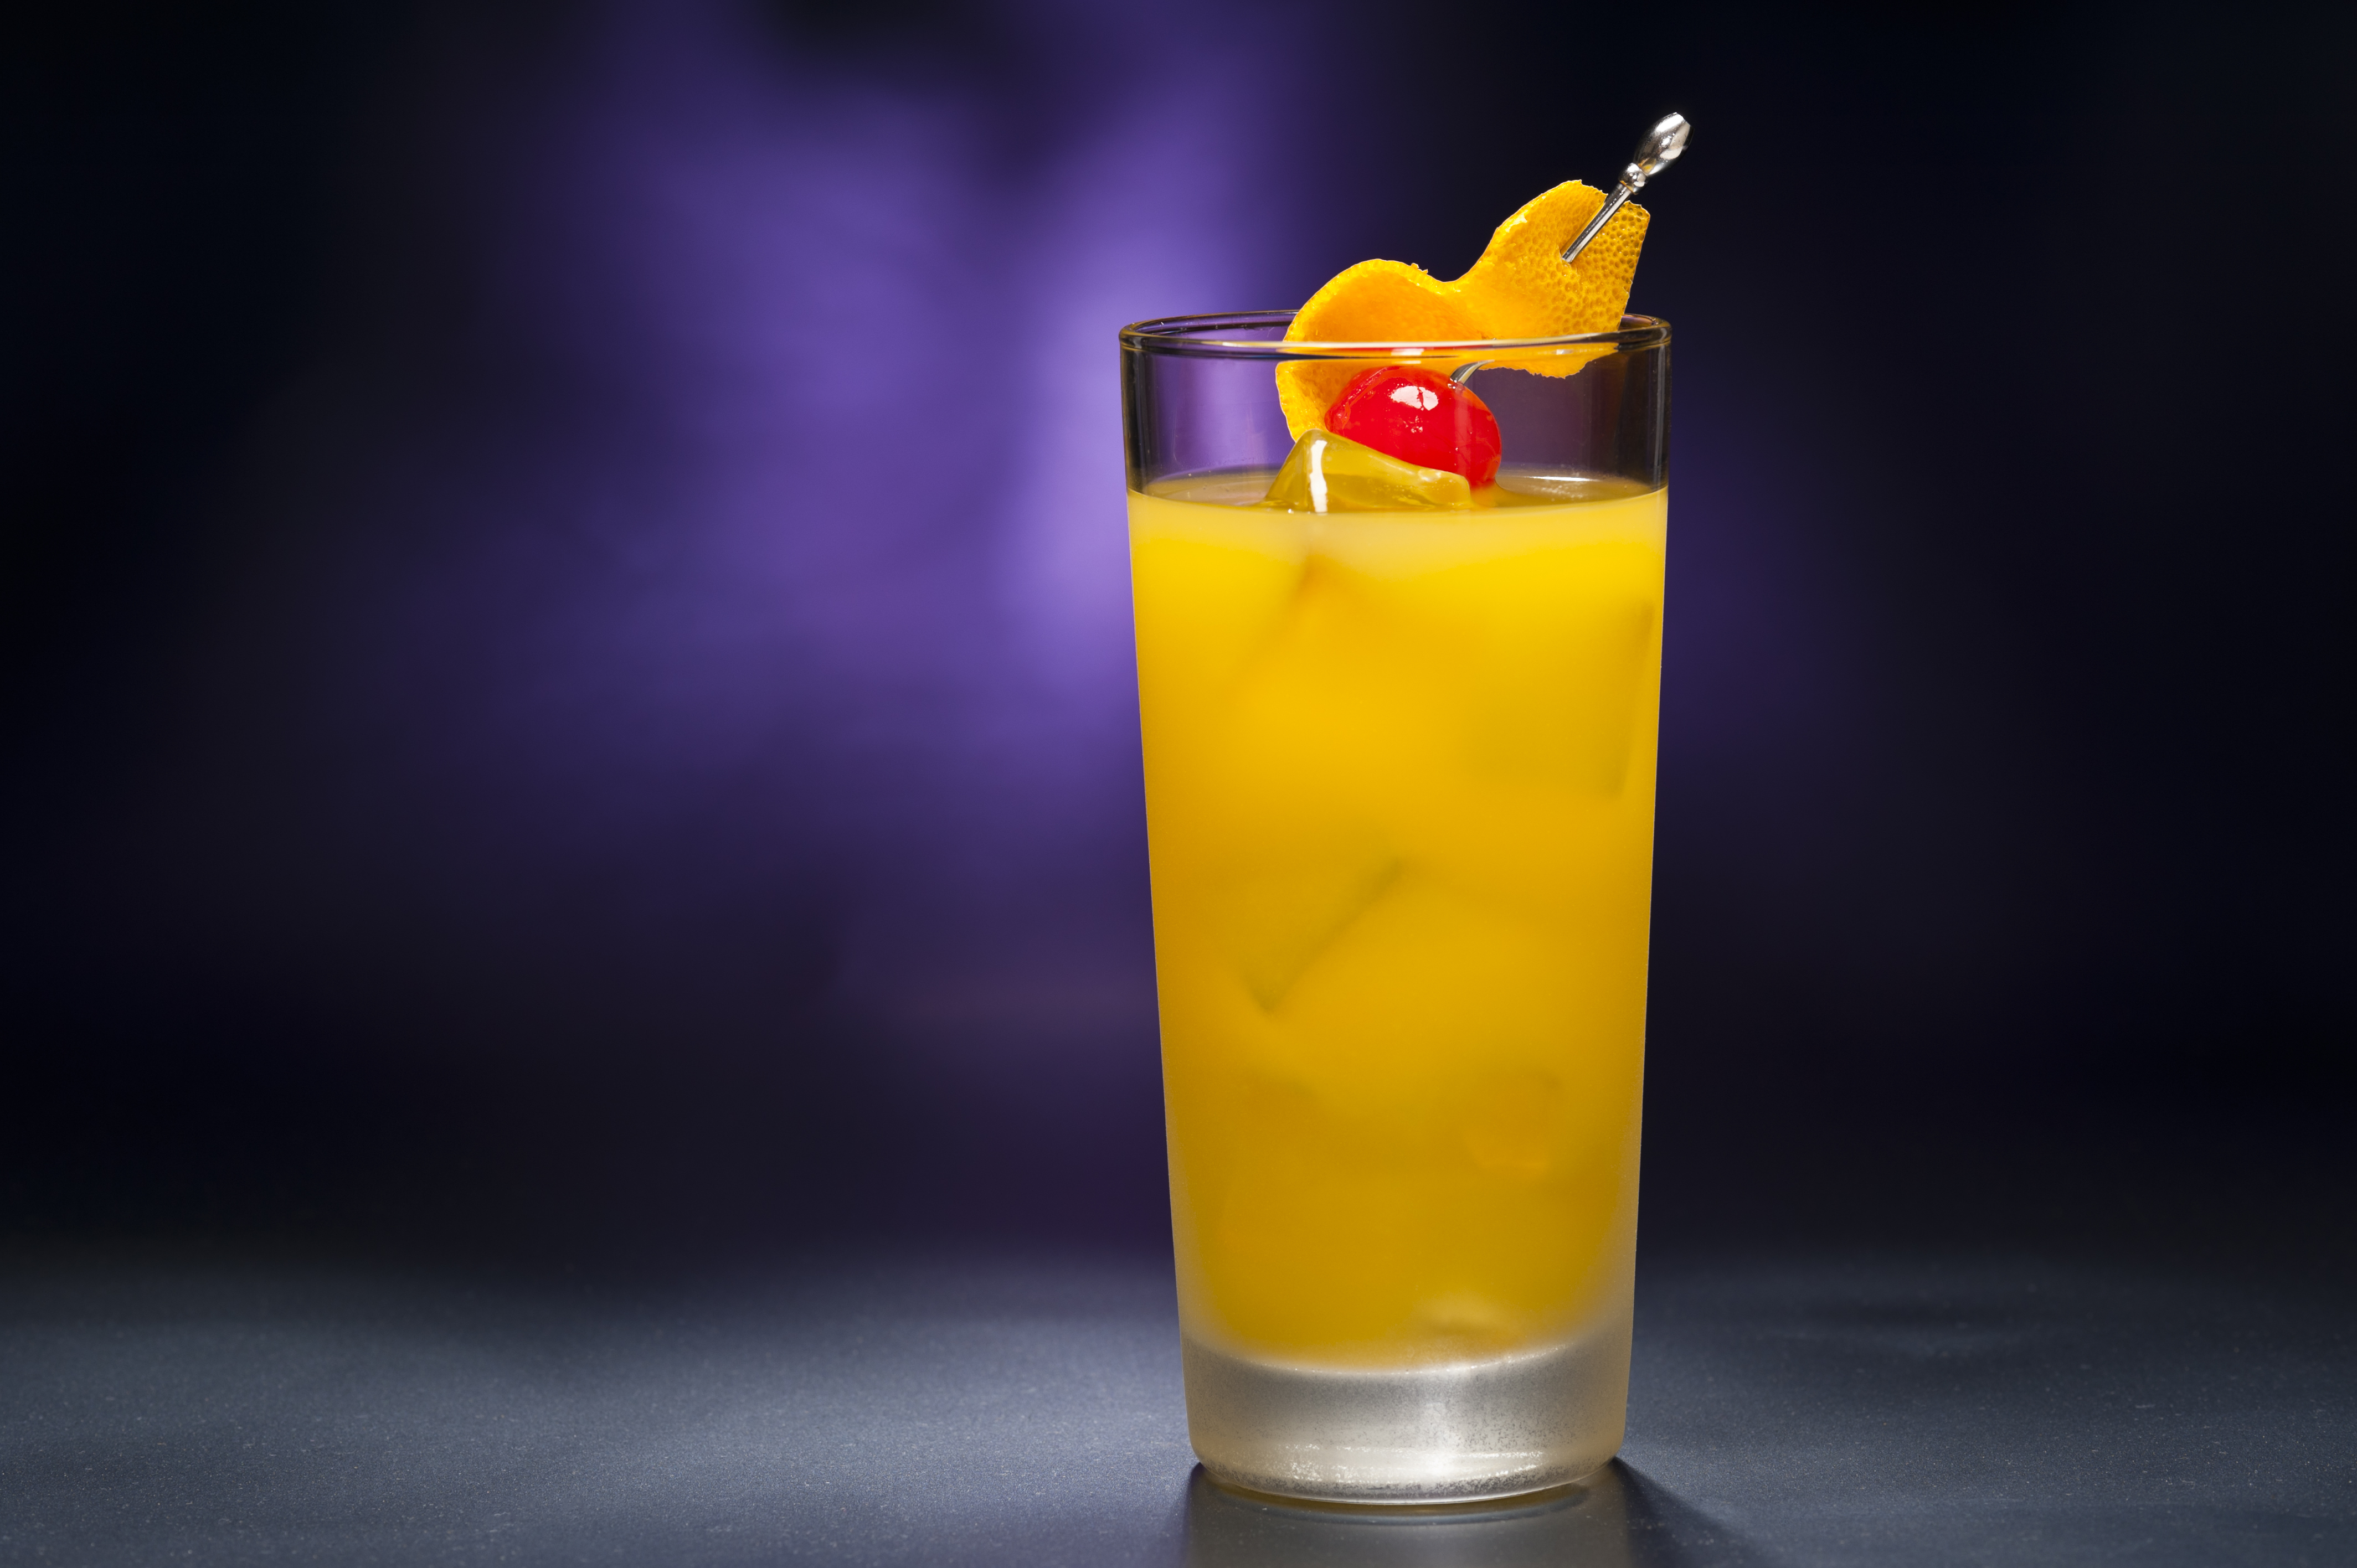 An orange highball cocktail garnished with a cherry and an orange peel in front of a purple background